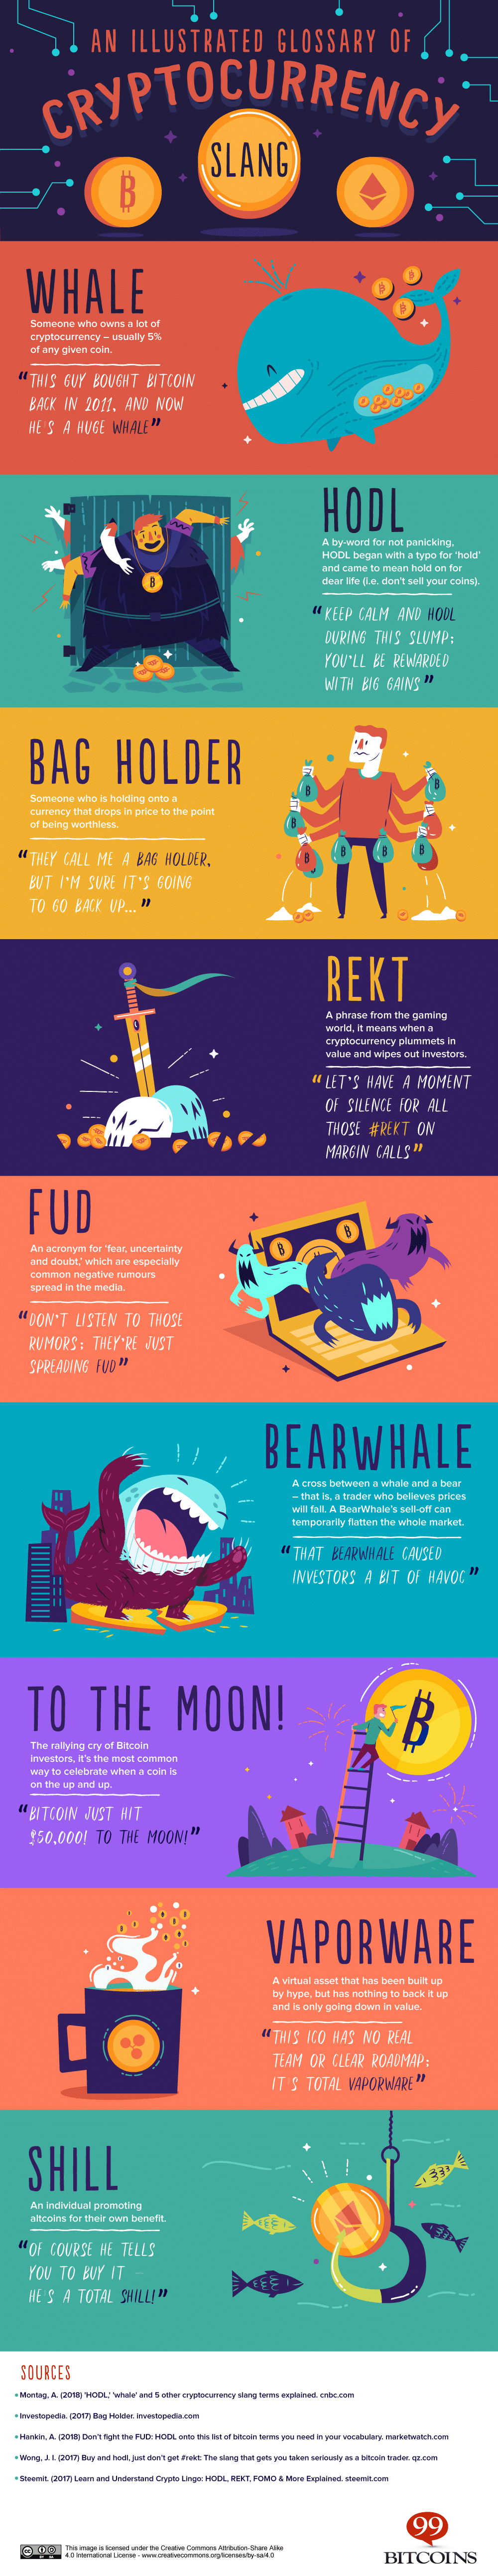 Cryptocurrency Slang - An Illustrated Glossary for Beginners   99 Bitcoins